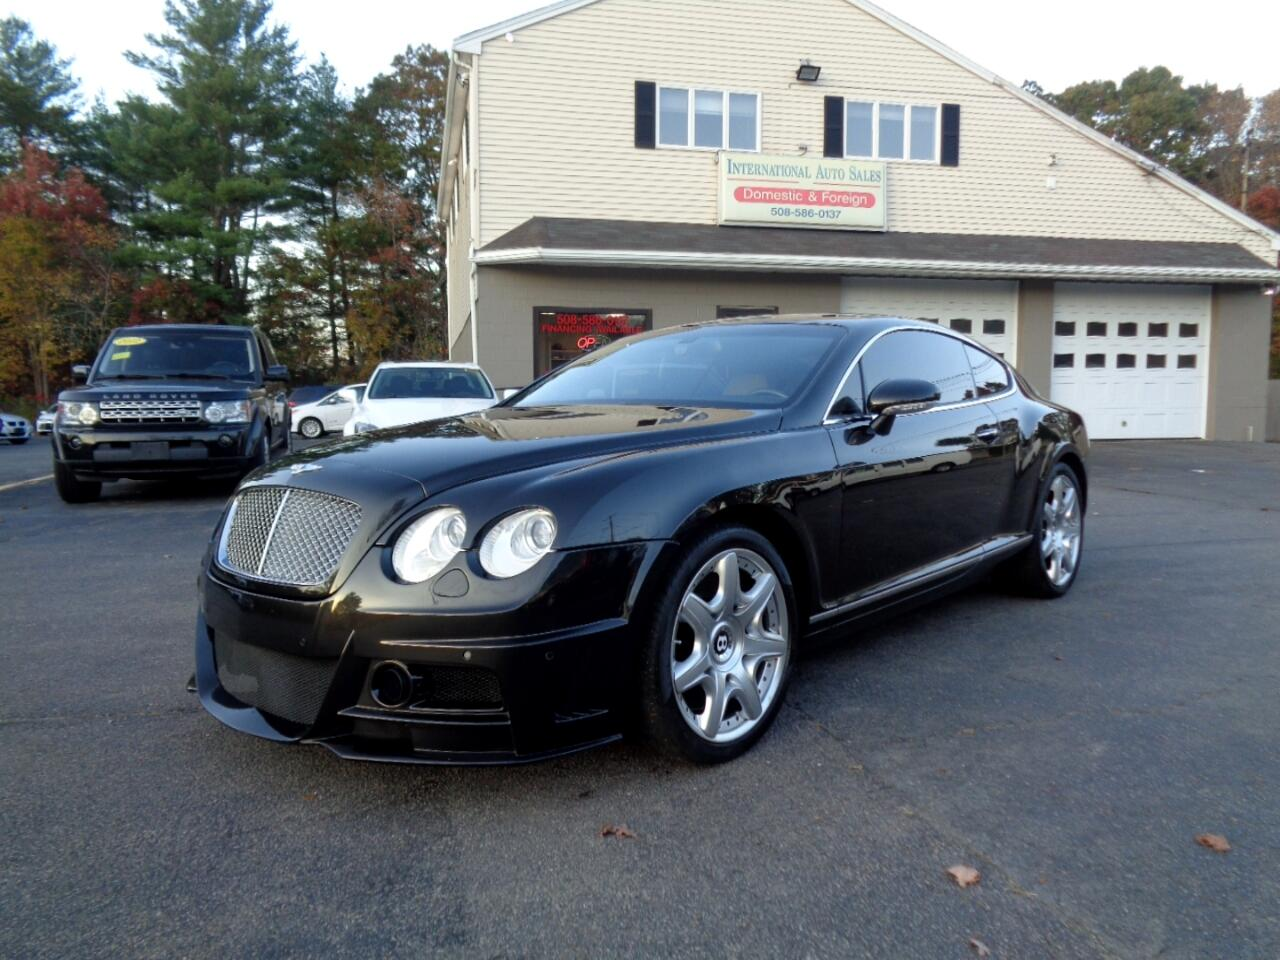 Used 2005 Bentley Continental Gt Coupe For Sale In W Bridgewater Ma 02379 International Auto Sales